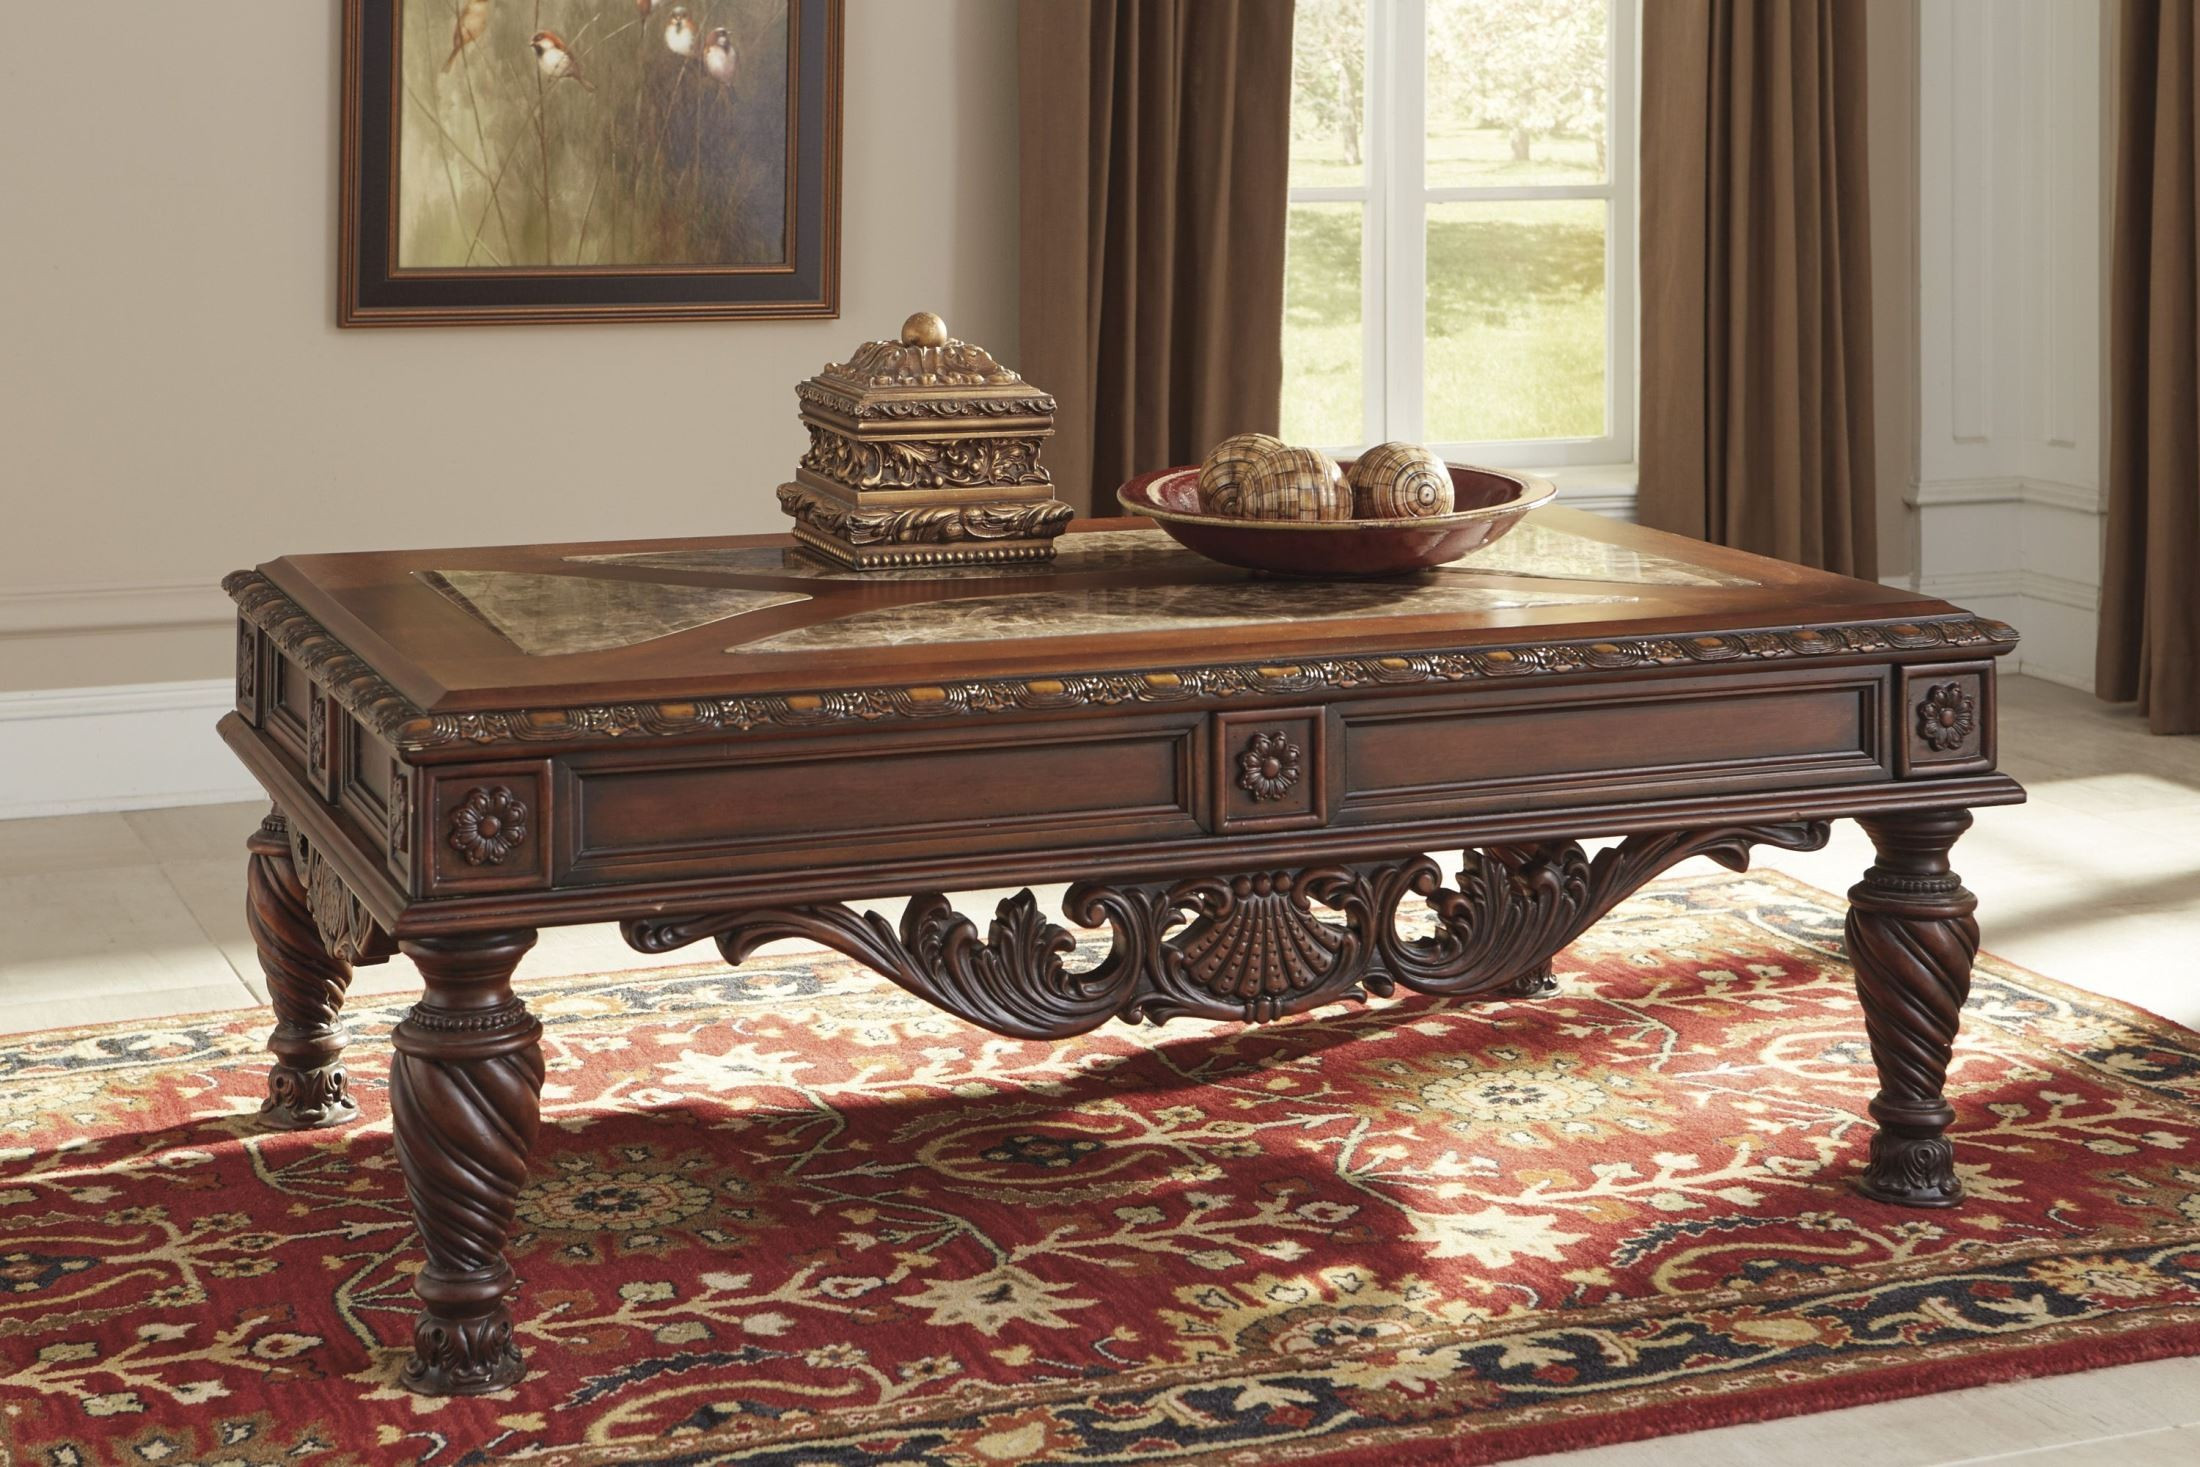 Best ideas about Ashley Furniture Coffee Tables . Save or Pin North Shore Rectangular Cocktail Table from Ashley T963 1 Now.